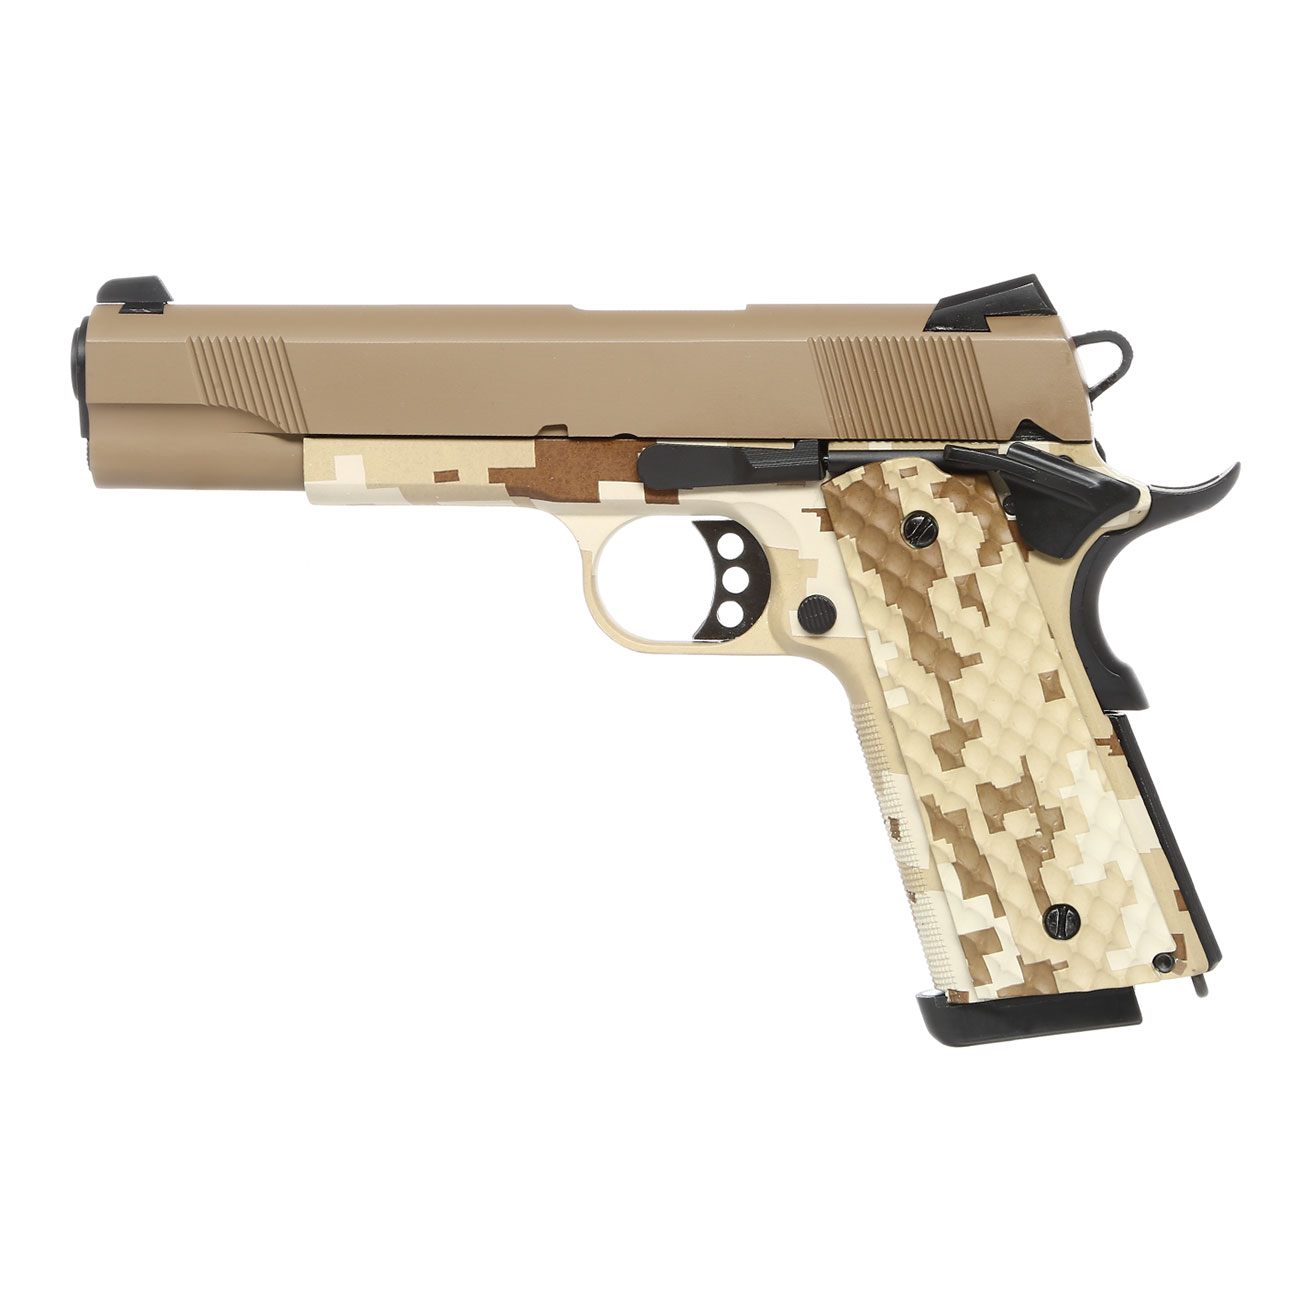 Nuprol Raven M1911 MEU Vollmetall GBB 6mm BB Tan / Digital Desert 1